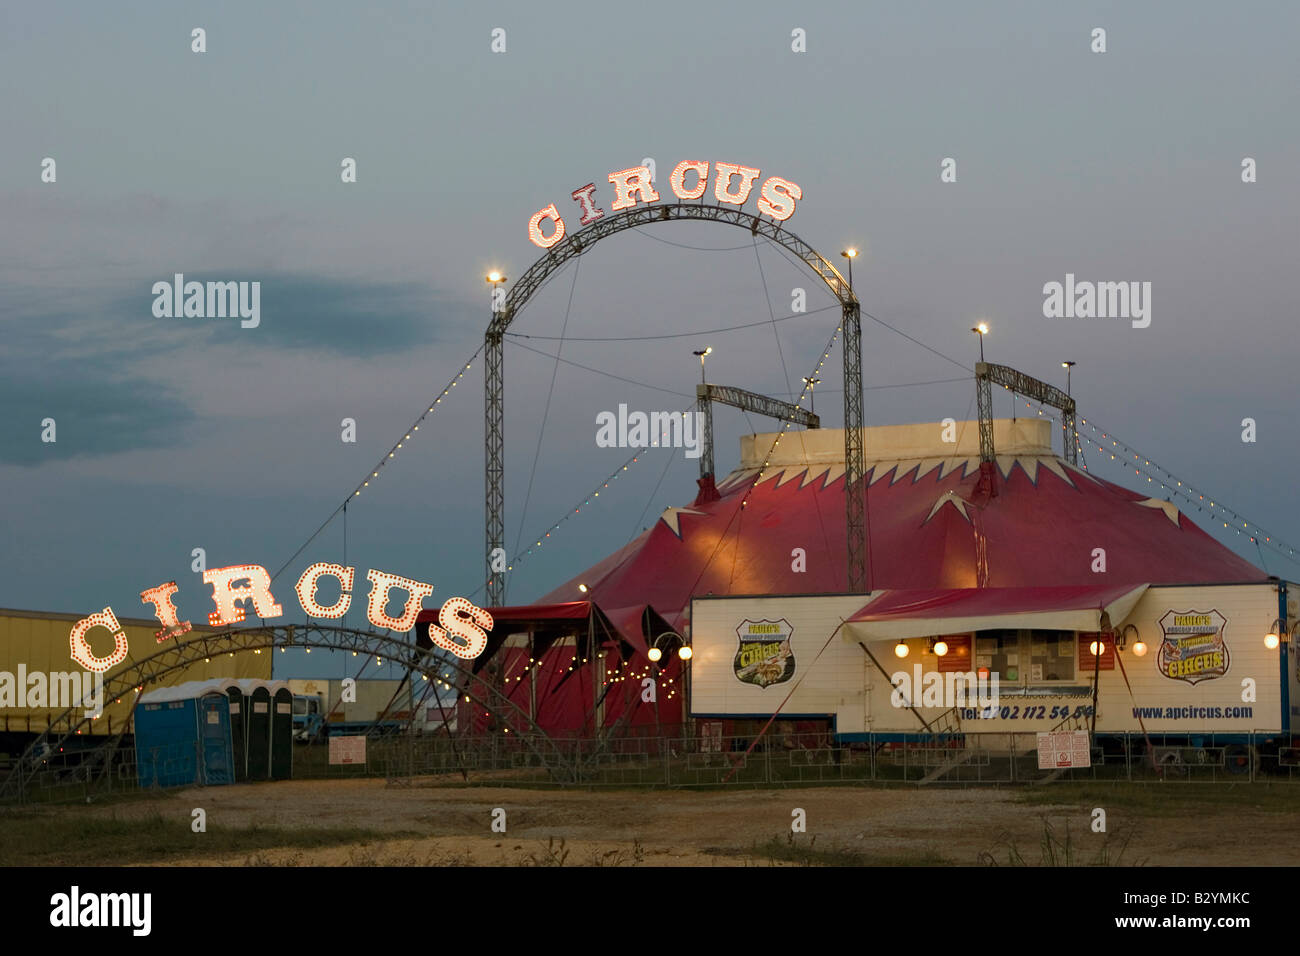 Illuminated circus sign, big top & ticket booth on Portland in 2008 Stock Photo